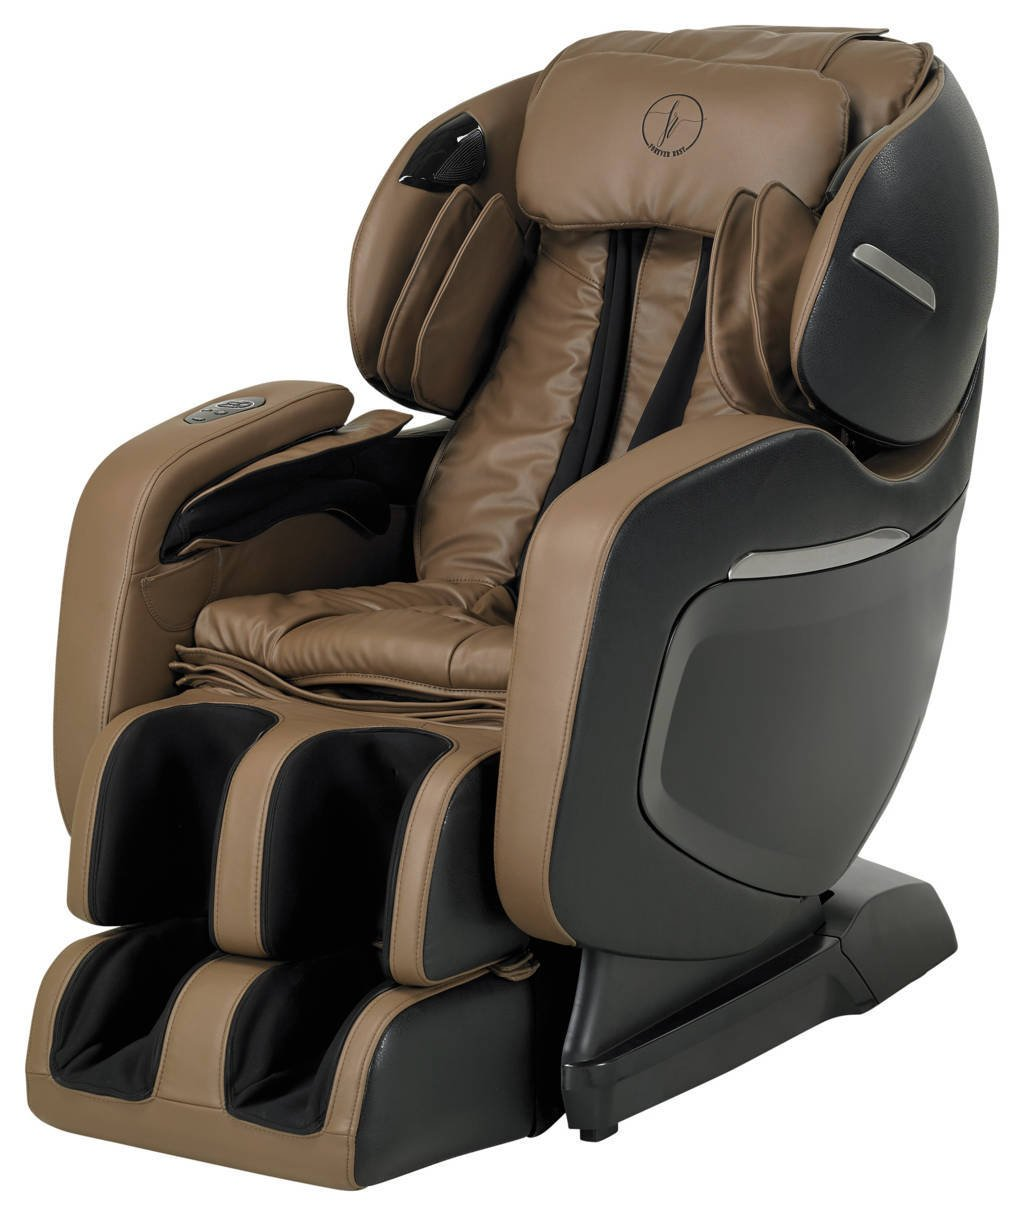 FINALLY ON AMAZON! The 2017 FOREVER REST FR-7Ks PREMIUM L-TRACK SMART MASSAGE CHAIR, TRIPLE FOOT ROLLERS, ZERO GRAVITY, WALL HUGGER, STRETCH AND SWING MODES, BLUETOOTH SPEAKERS. (BLACK / BEIGE CARMEL)